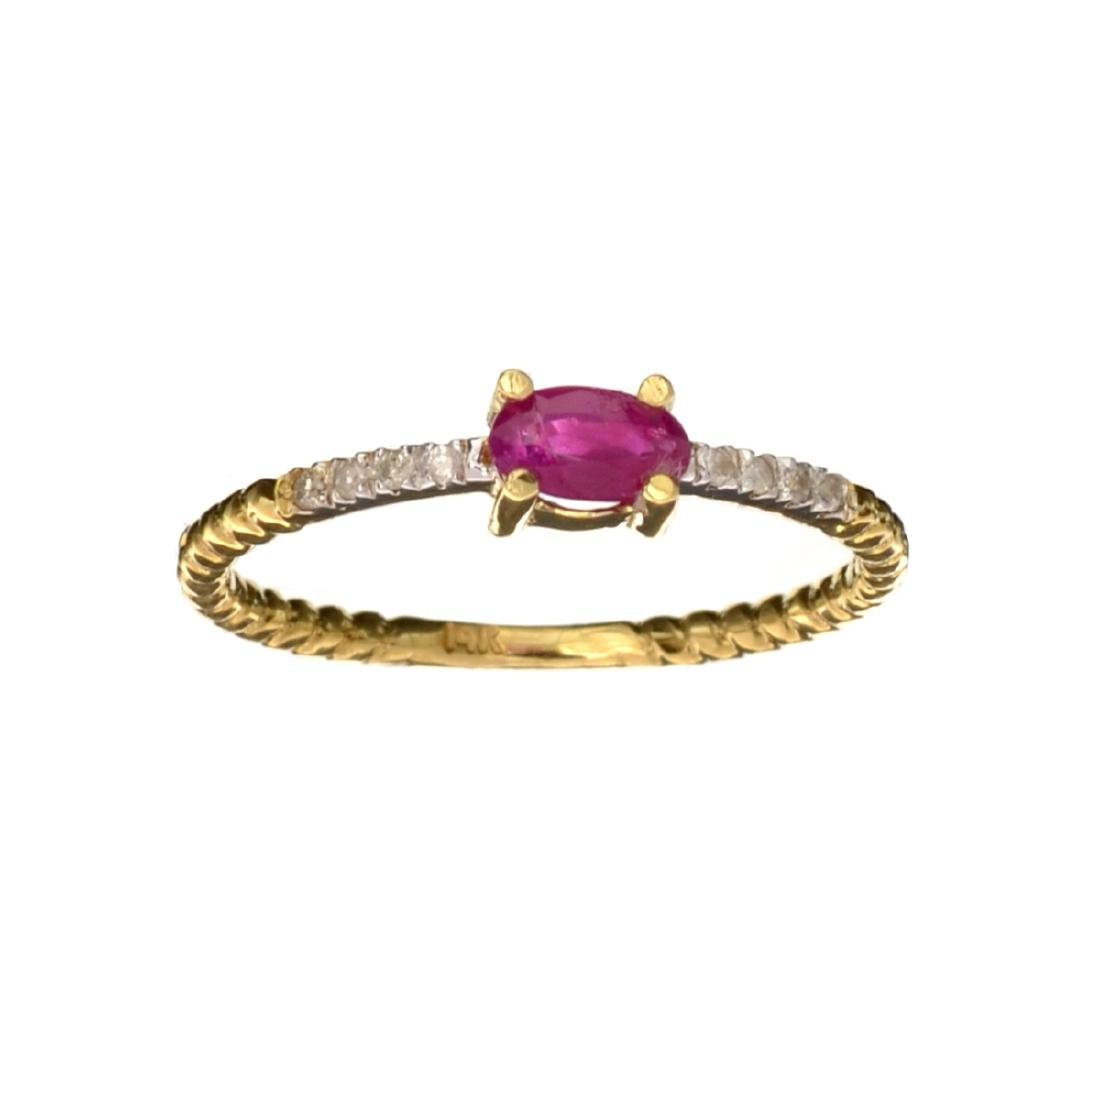 APP: 0.6k Fine Jewelry 14KT Gold, 0.26CT Ruby And